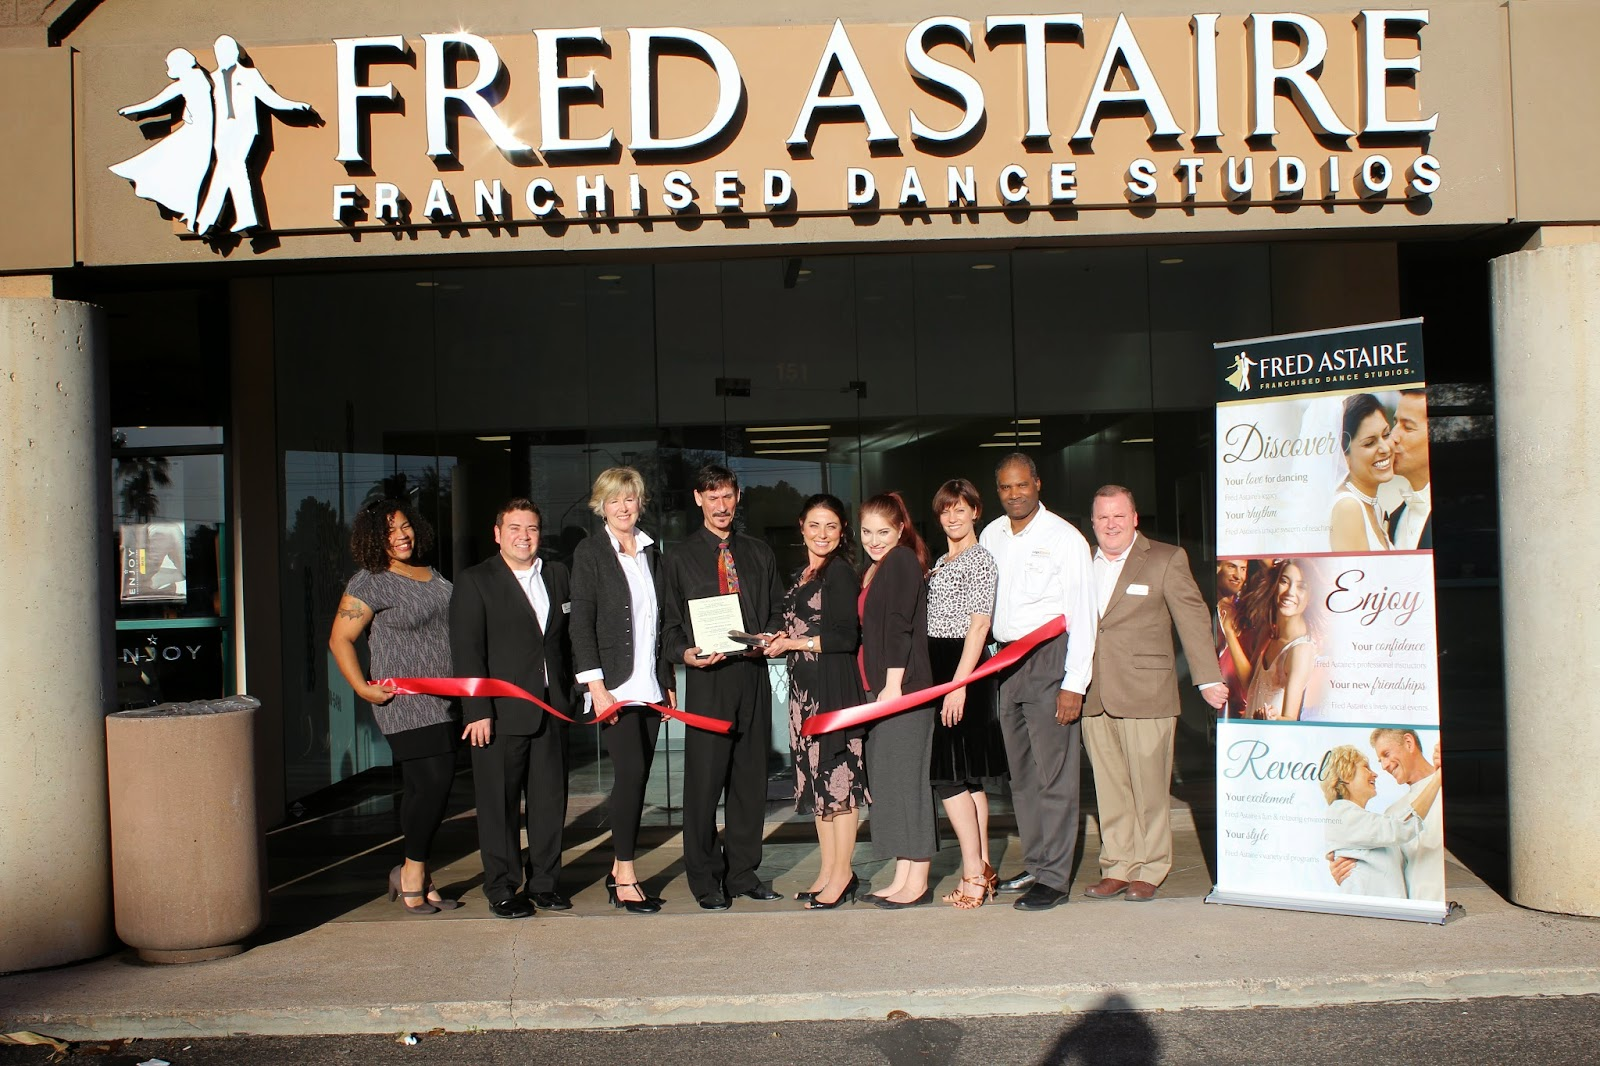 Fred Astaire is a dance studio that specializes in high quality Ballroom Dance instruction.  Fred Astaire Dance Studio 4811 E. Grant Road #151, 85712 (520) 300-5490